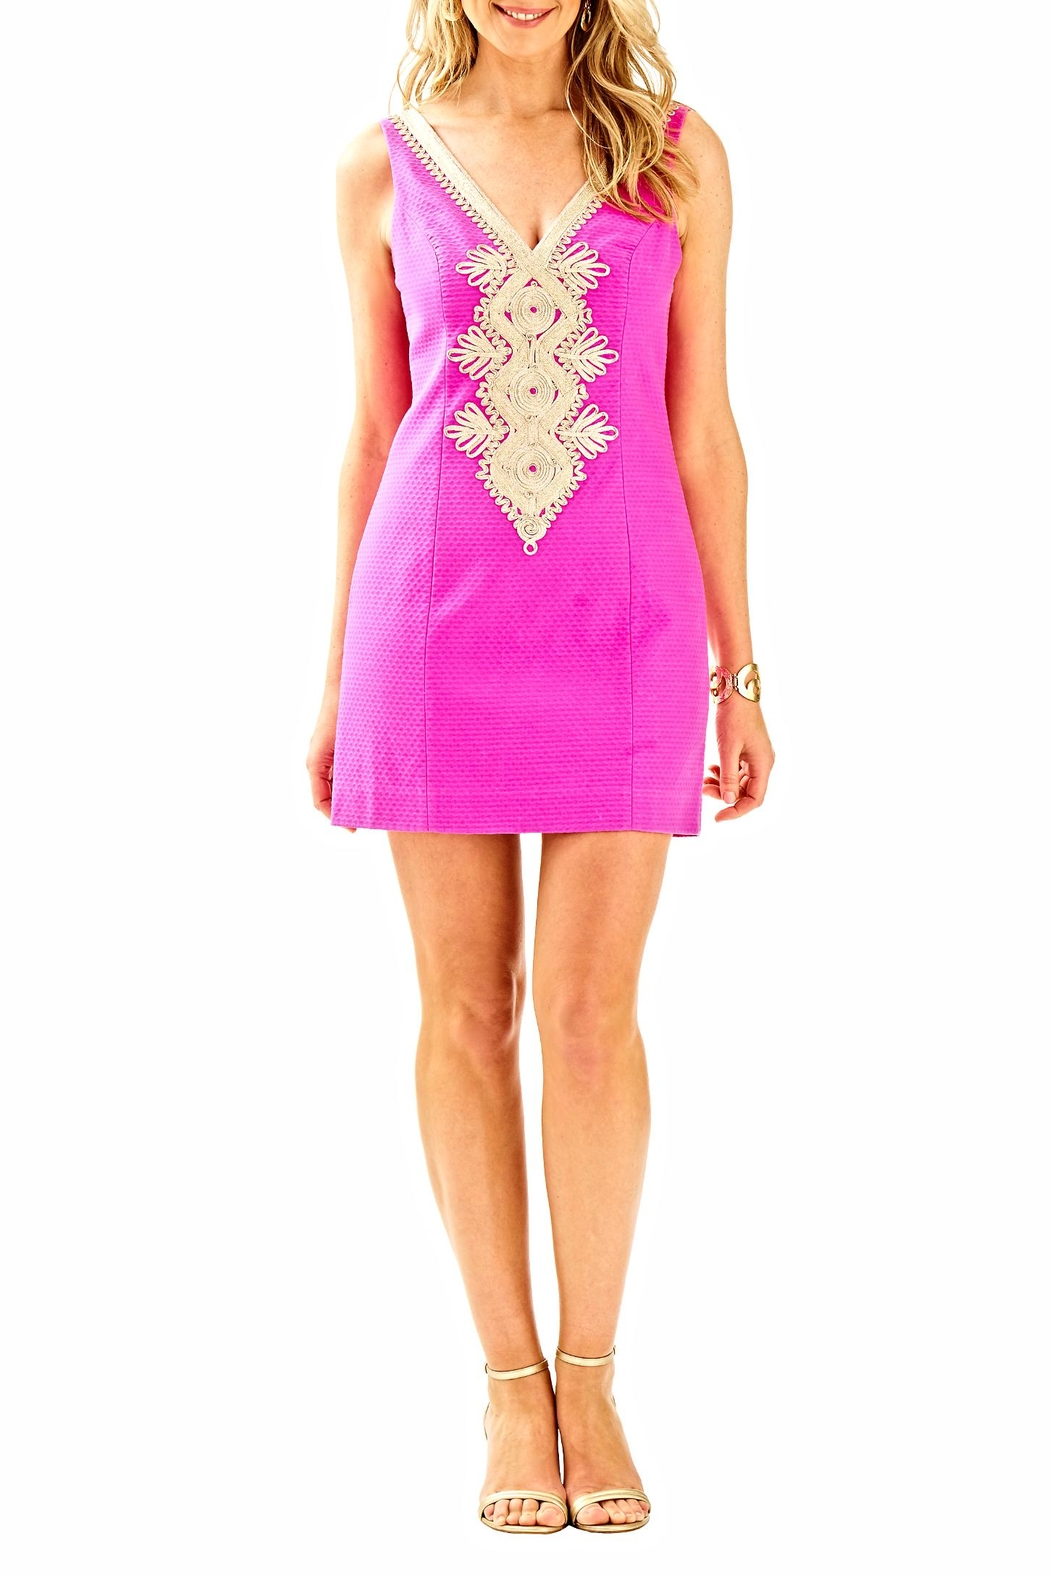 Lilly Pulitzer Junie Sheath Dress - Back Cropped Image